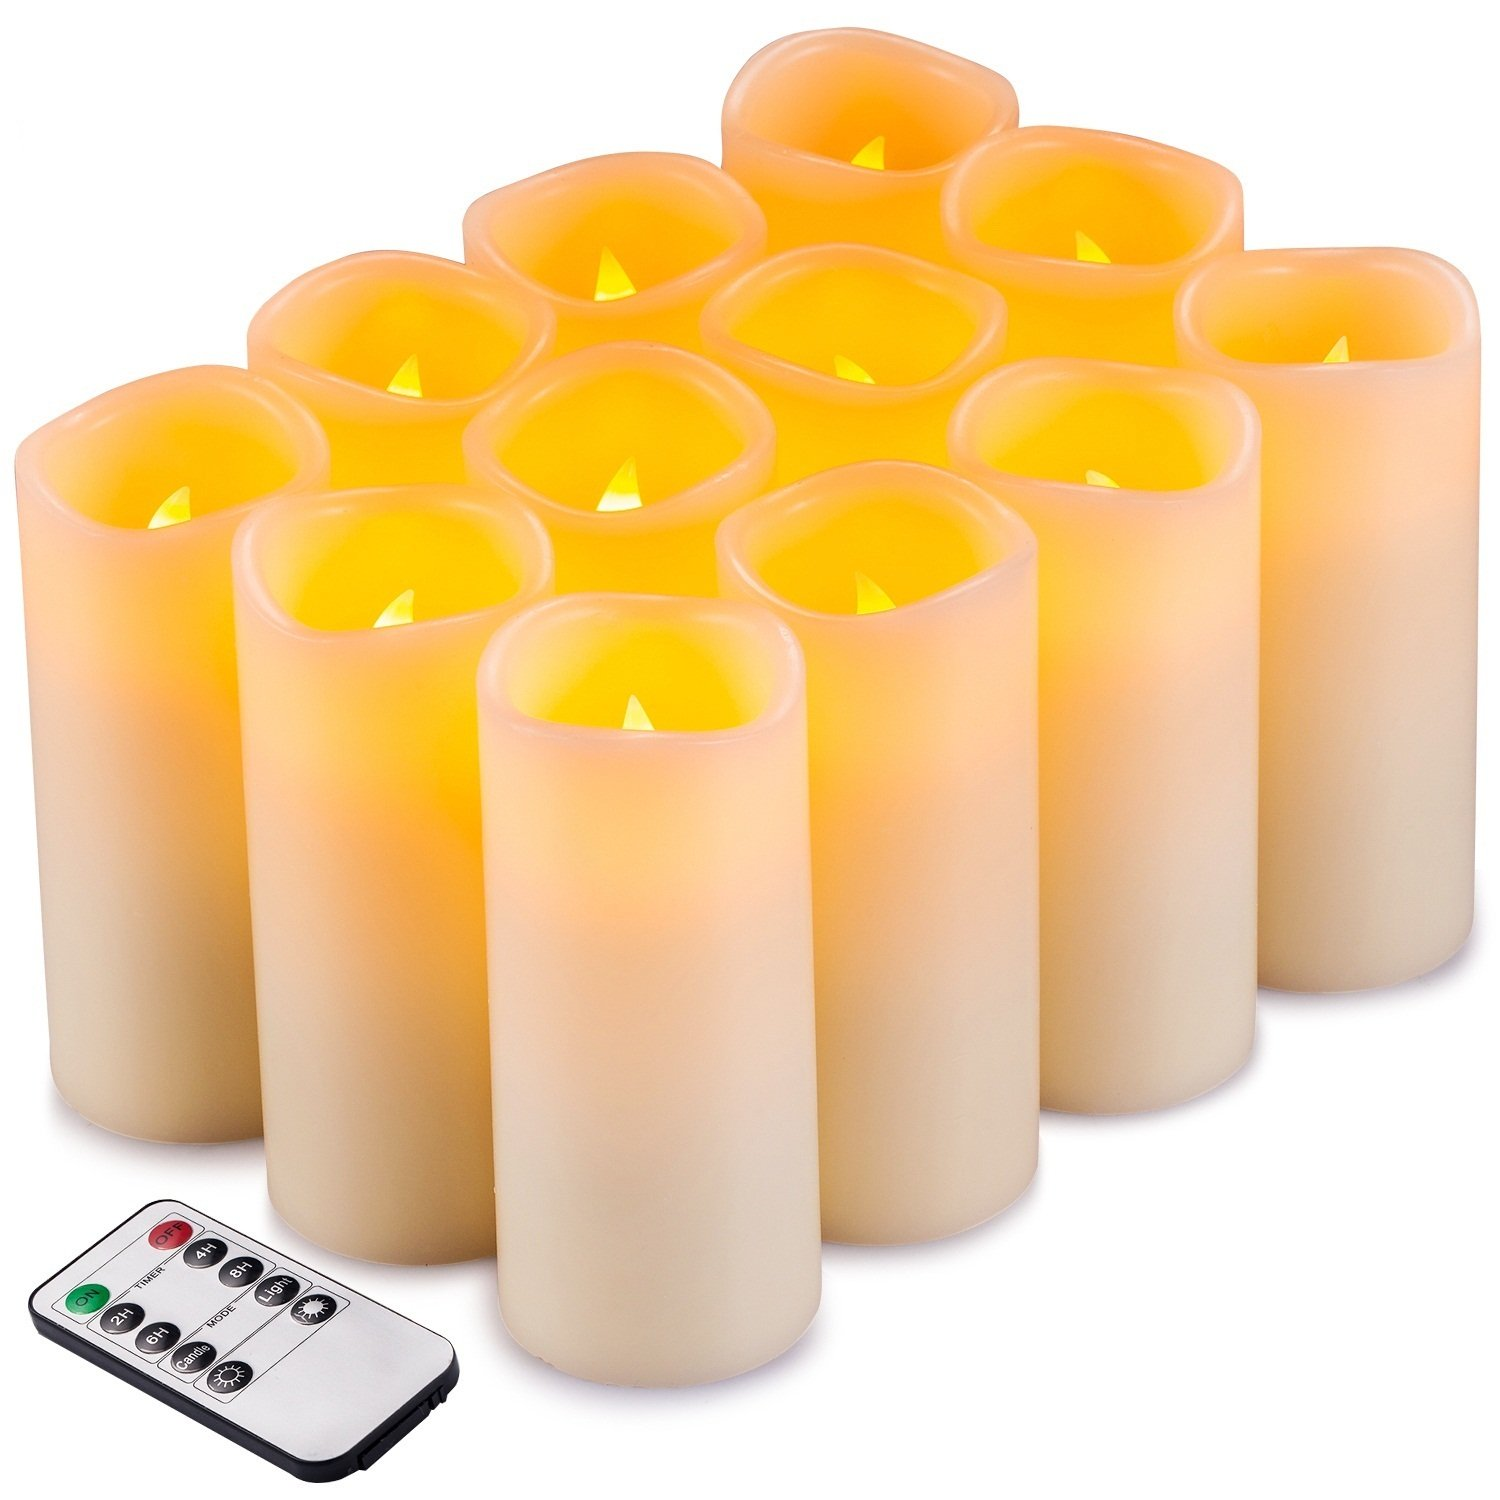 Flameless Candles Flickering LED Candles Set of 12 (D:2.2'' X H:5'') Ivory Real Wax Pillar Battery Opeated Candles with 10-key Remote and Cycling 24 Hours Timer by Enpornk